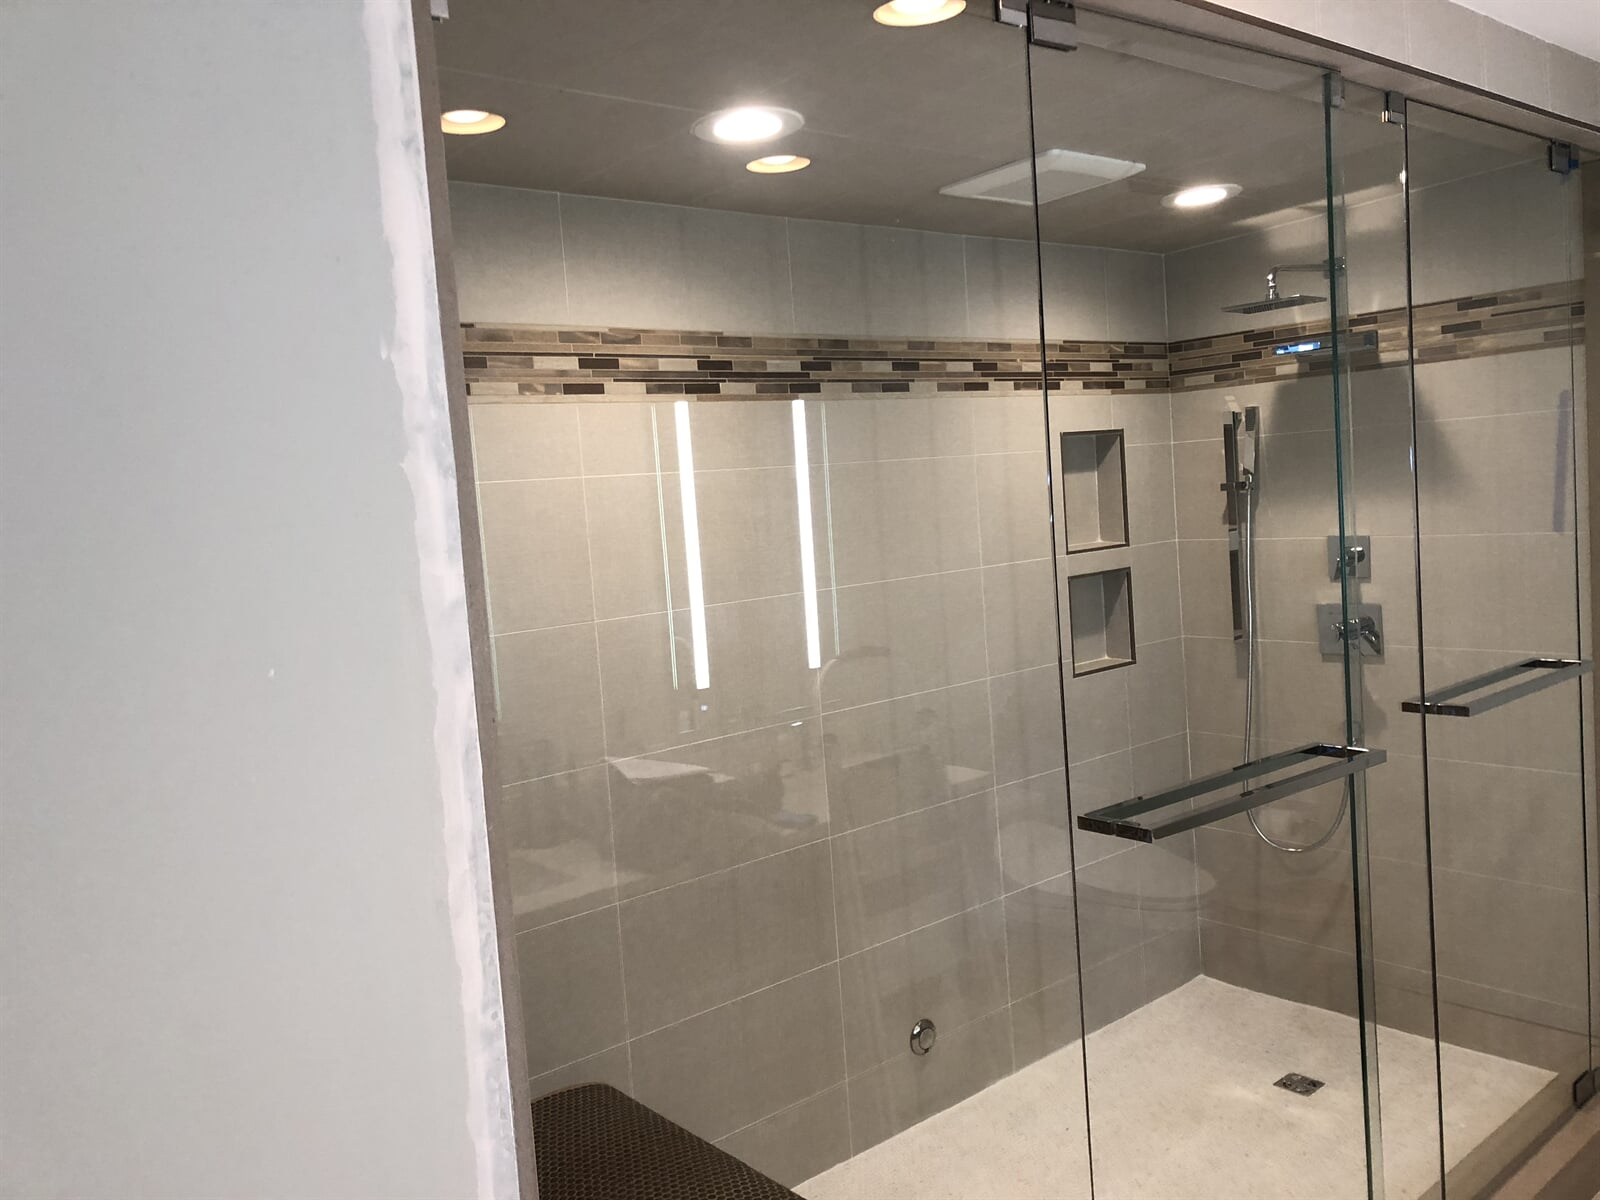 Waterfall Shower with steam faucet remodel from relo interiors service